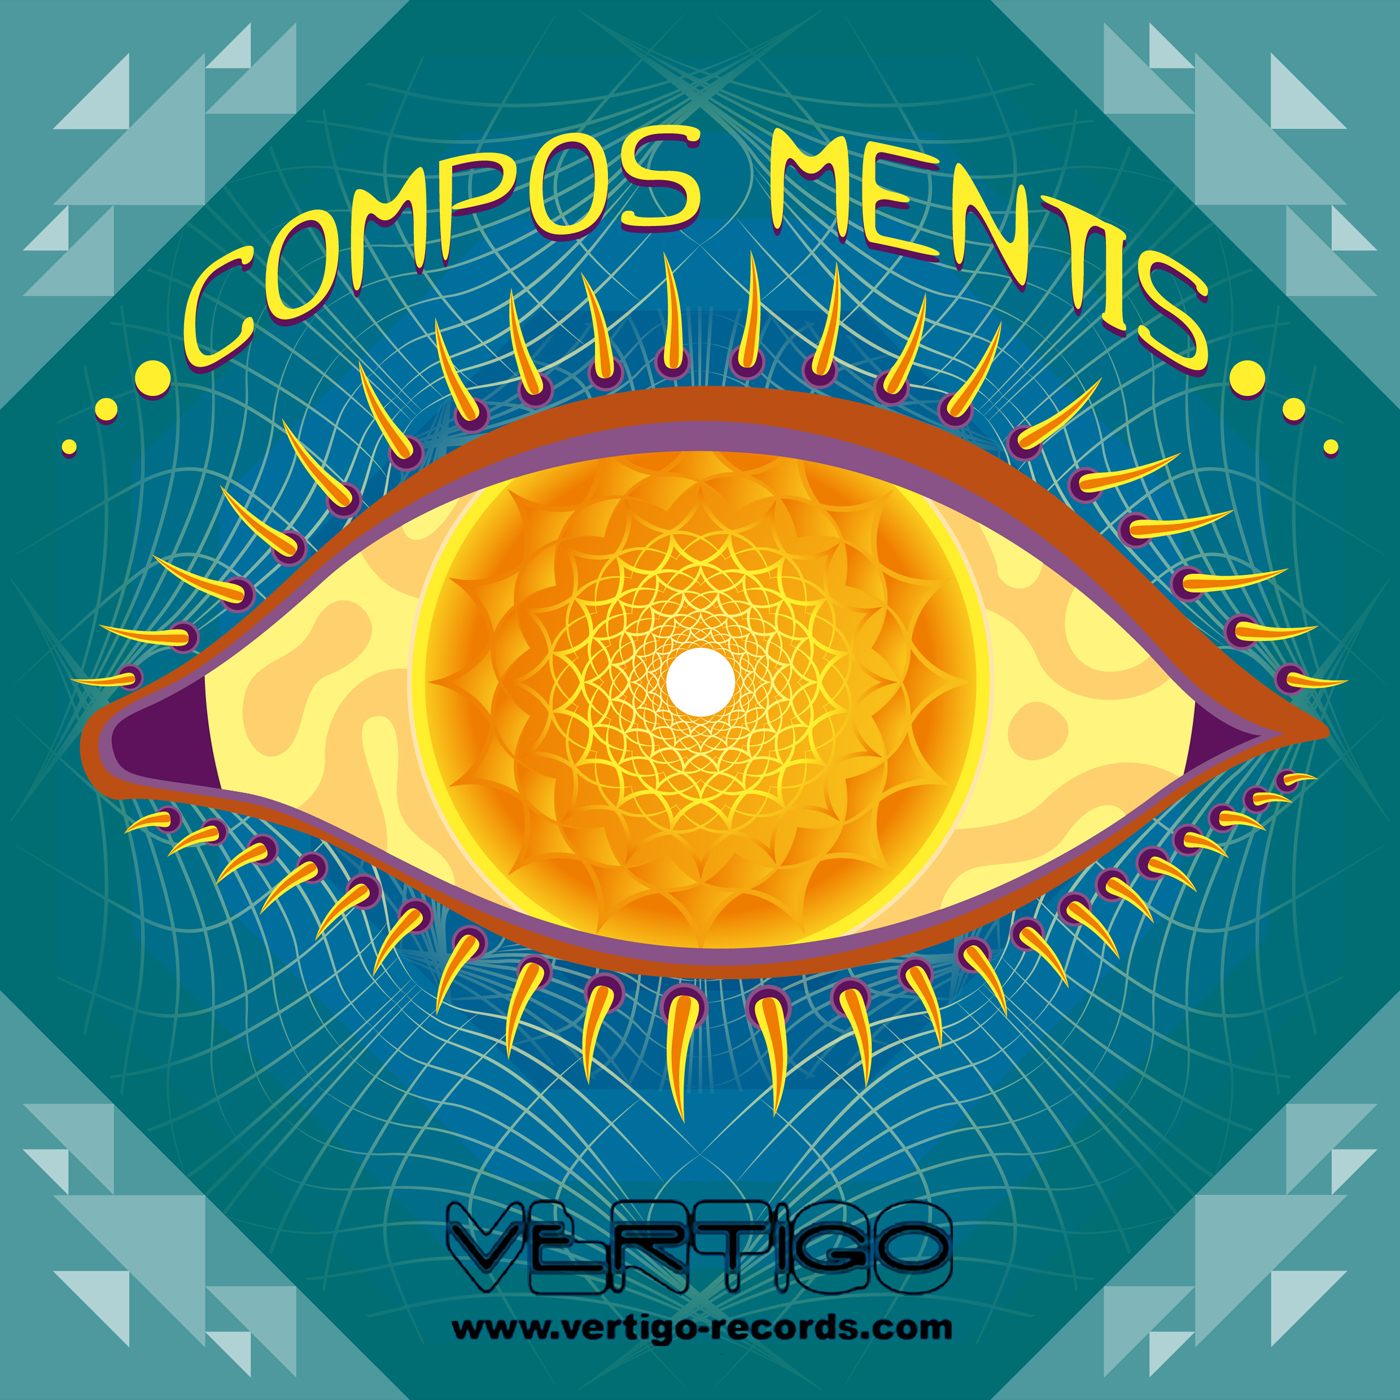 Compos Mentis psychedelic trance album cover art by Andrei Verner